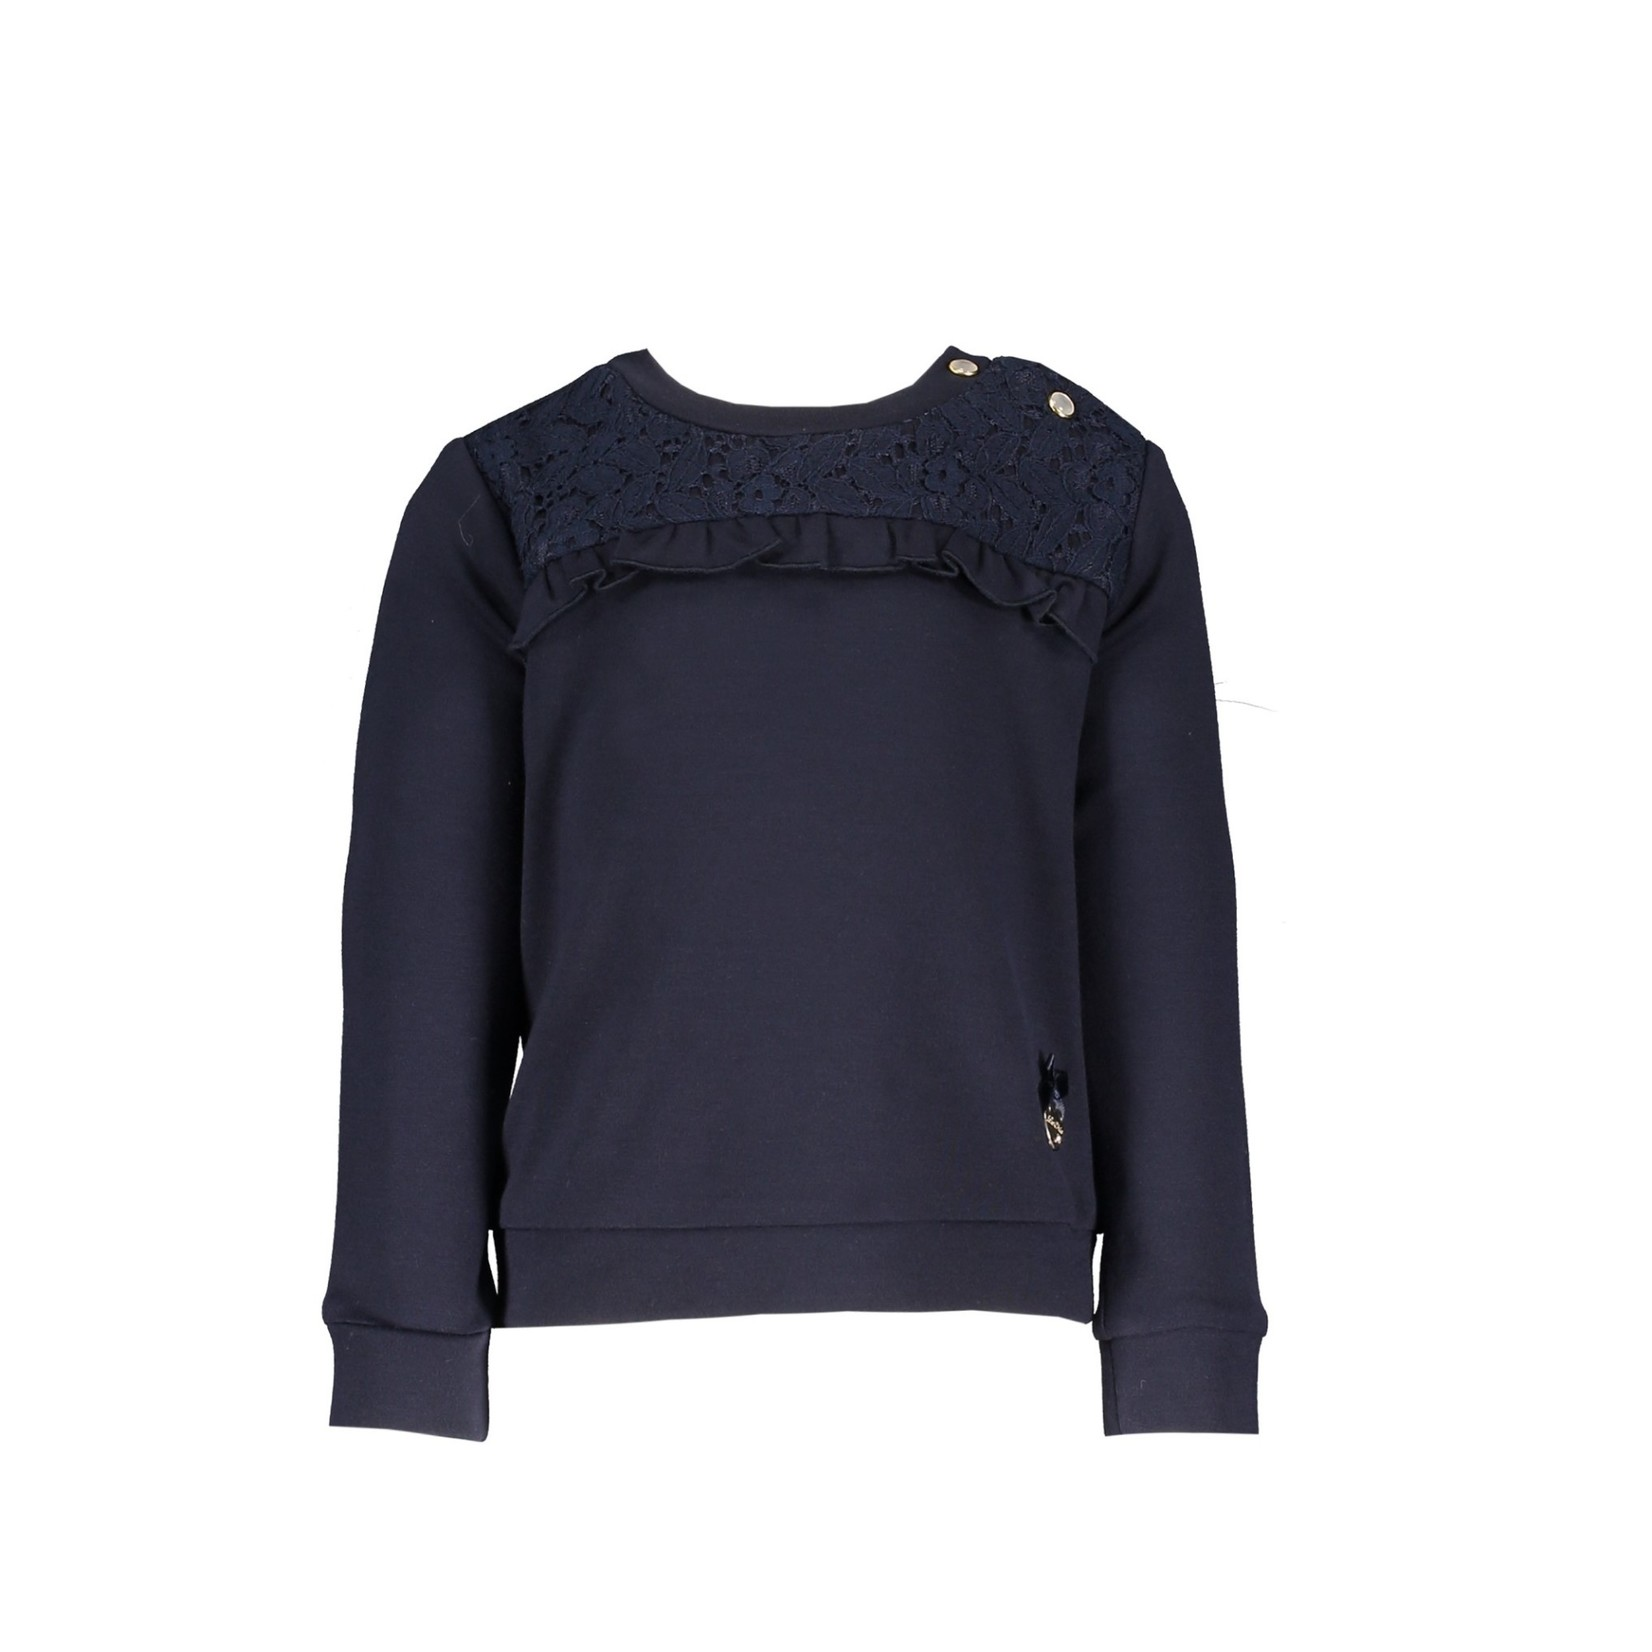 Le Chic Le Chic sweater ruffle & lace insert